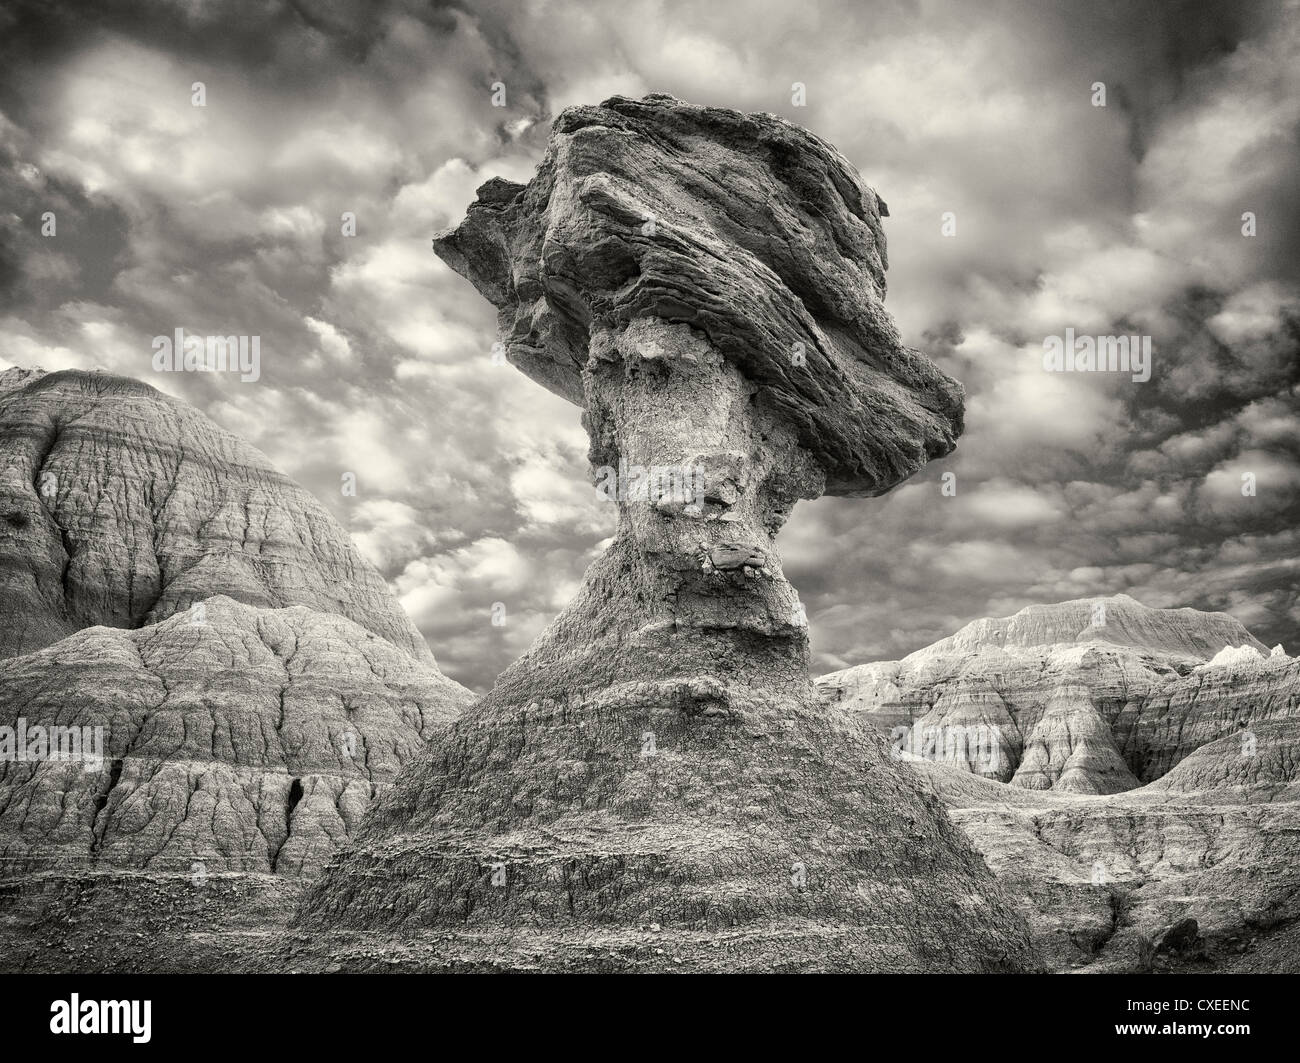 Rock d'équilibrage. Badlands National Park. Le Dakota du Sud Photo Stock